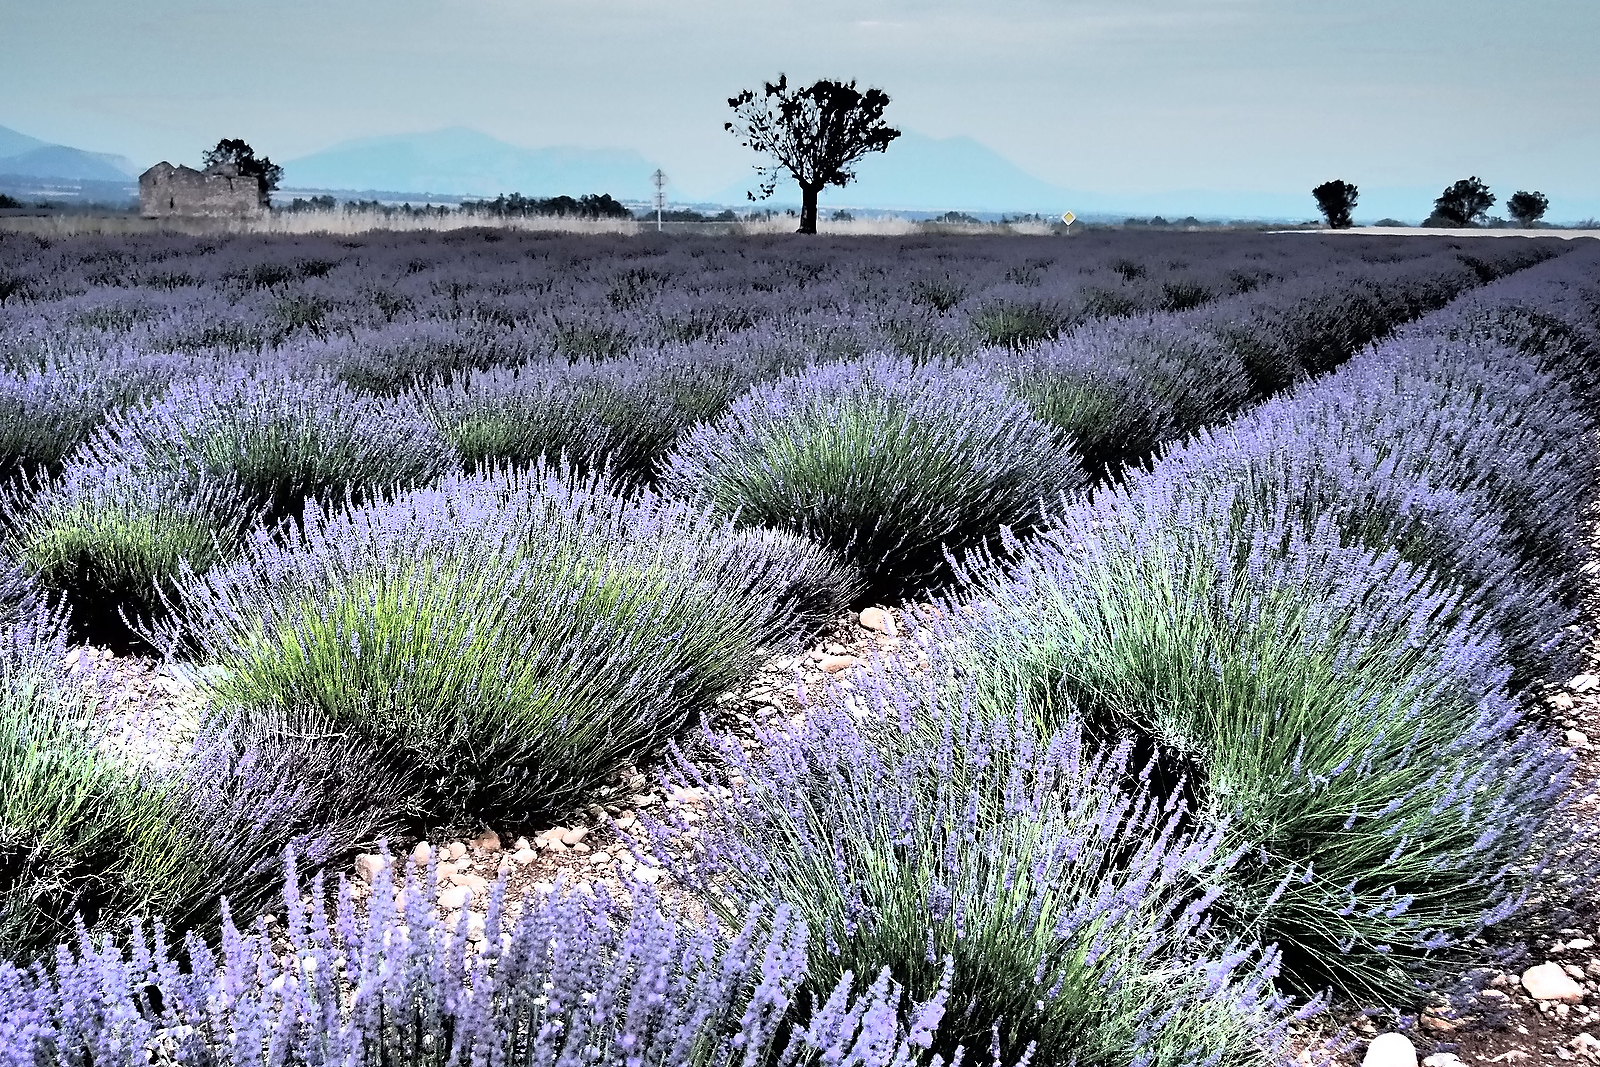 Lavender fields - we must be in Provence.